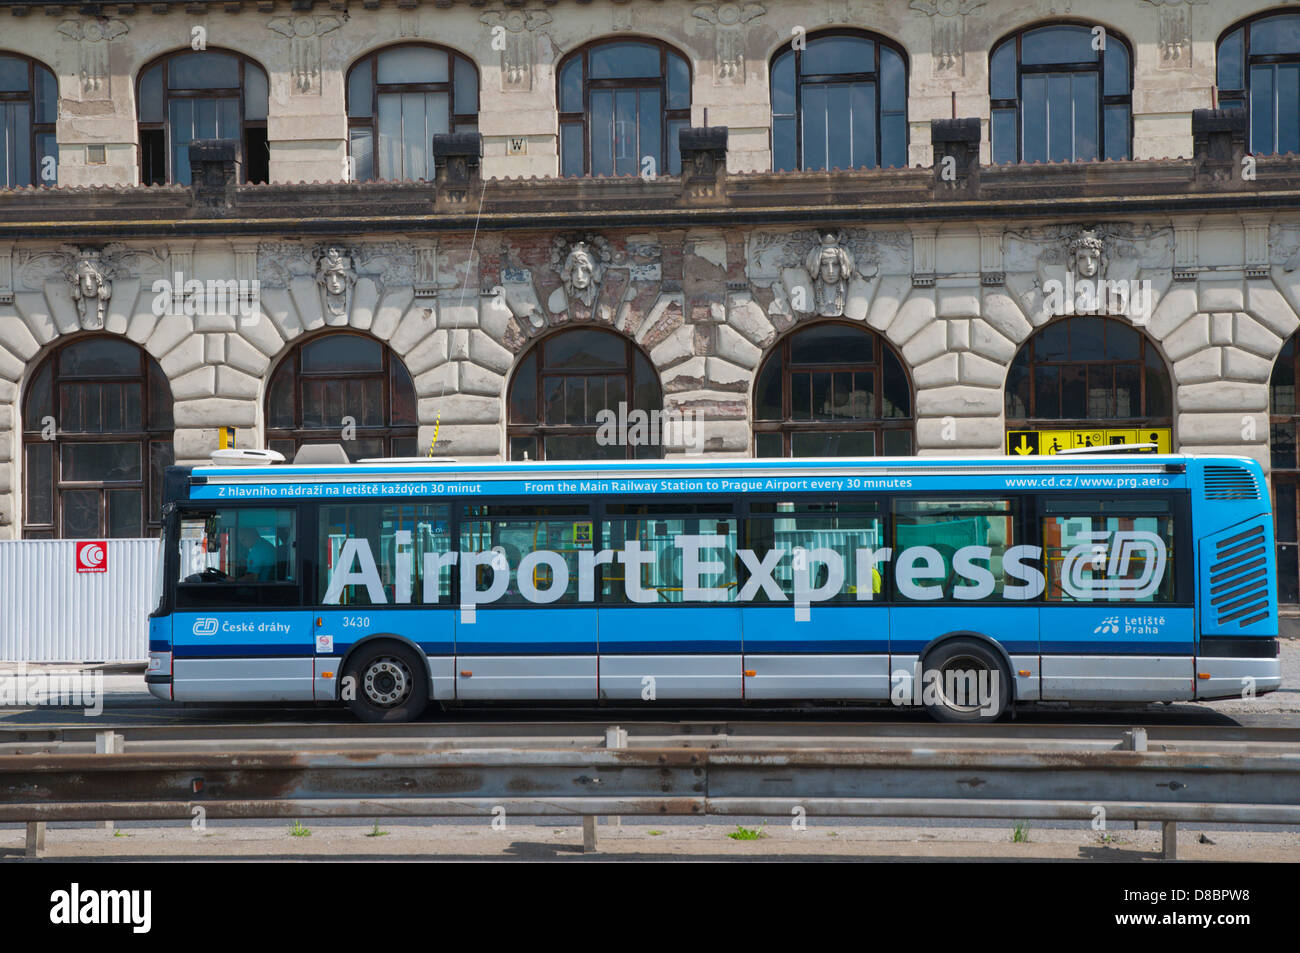 Railway stations, airports, bus stations: a selection of sites